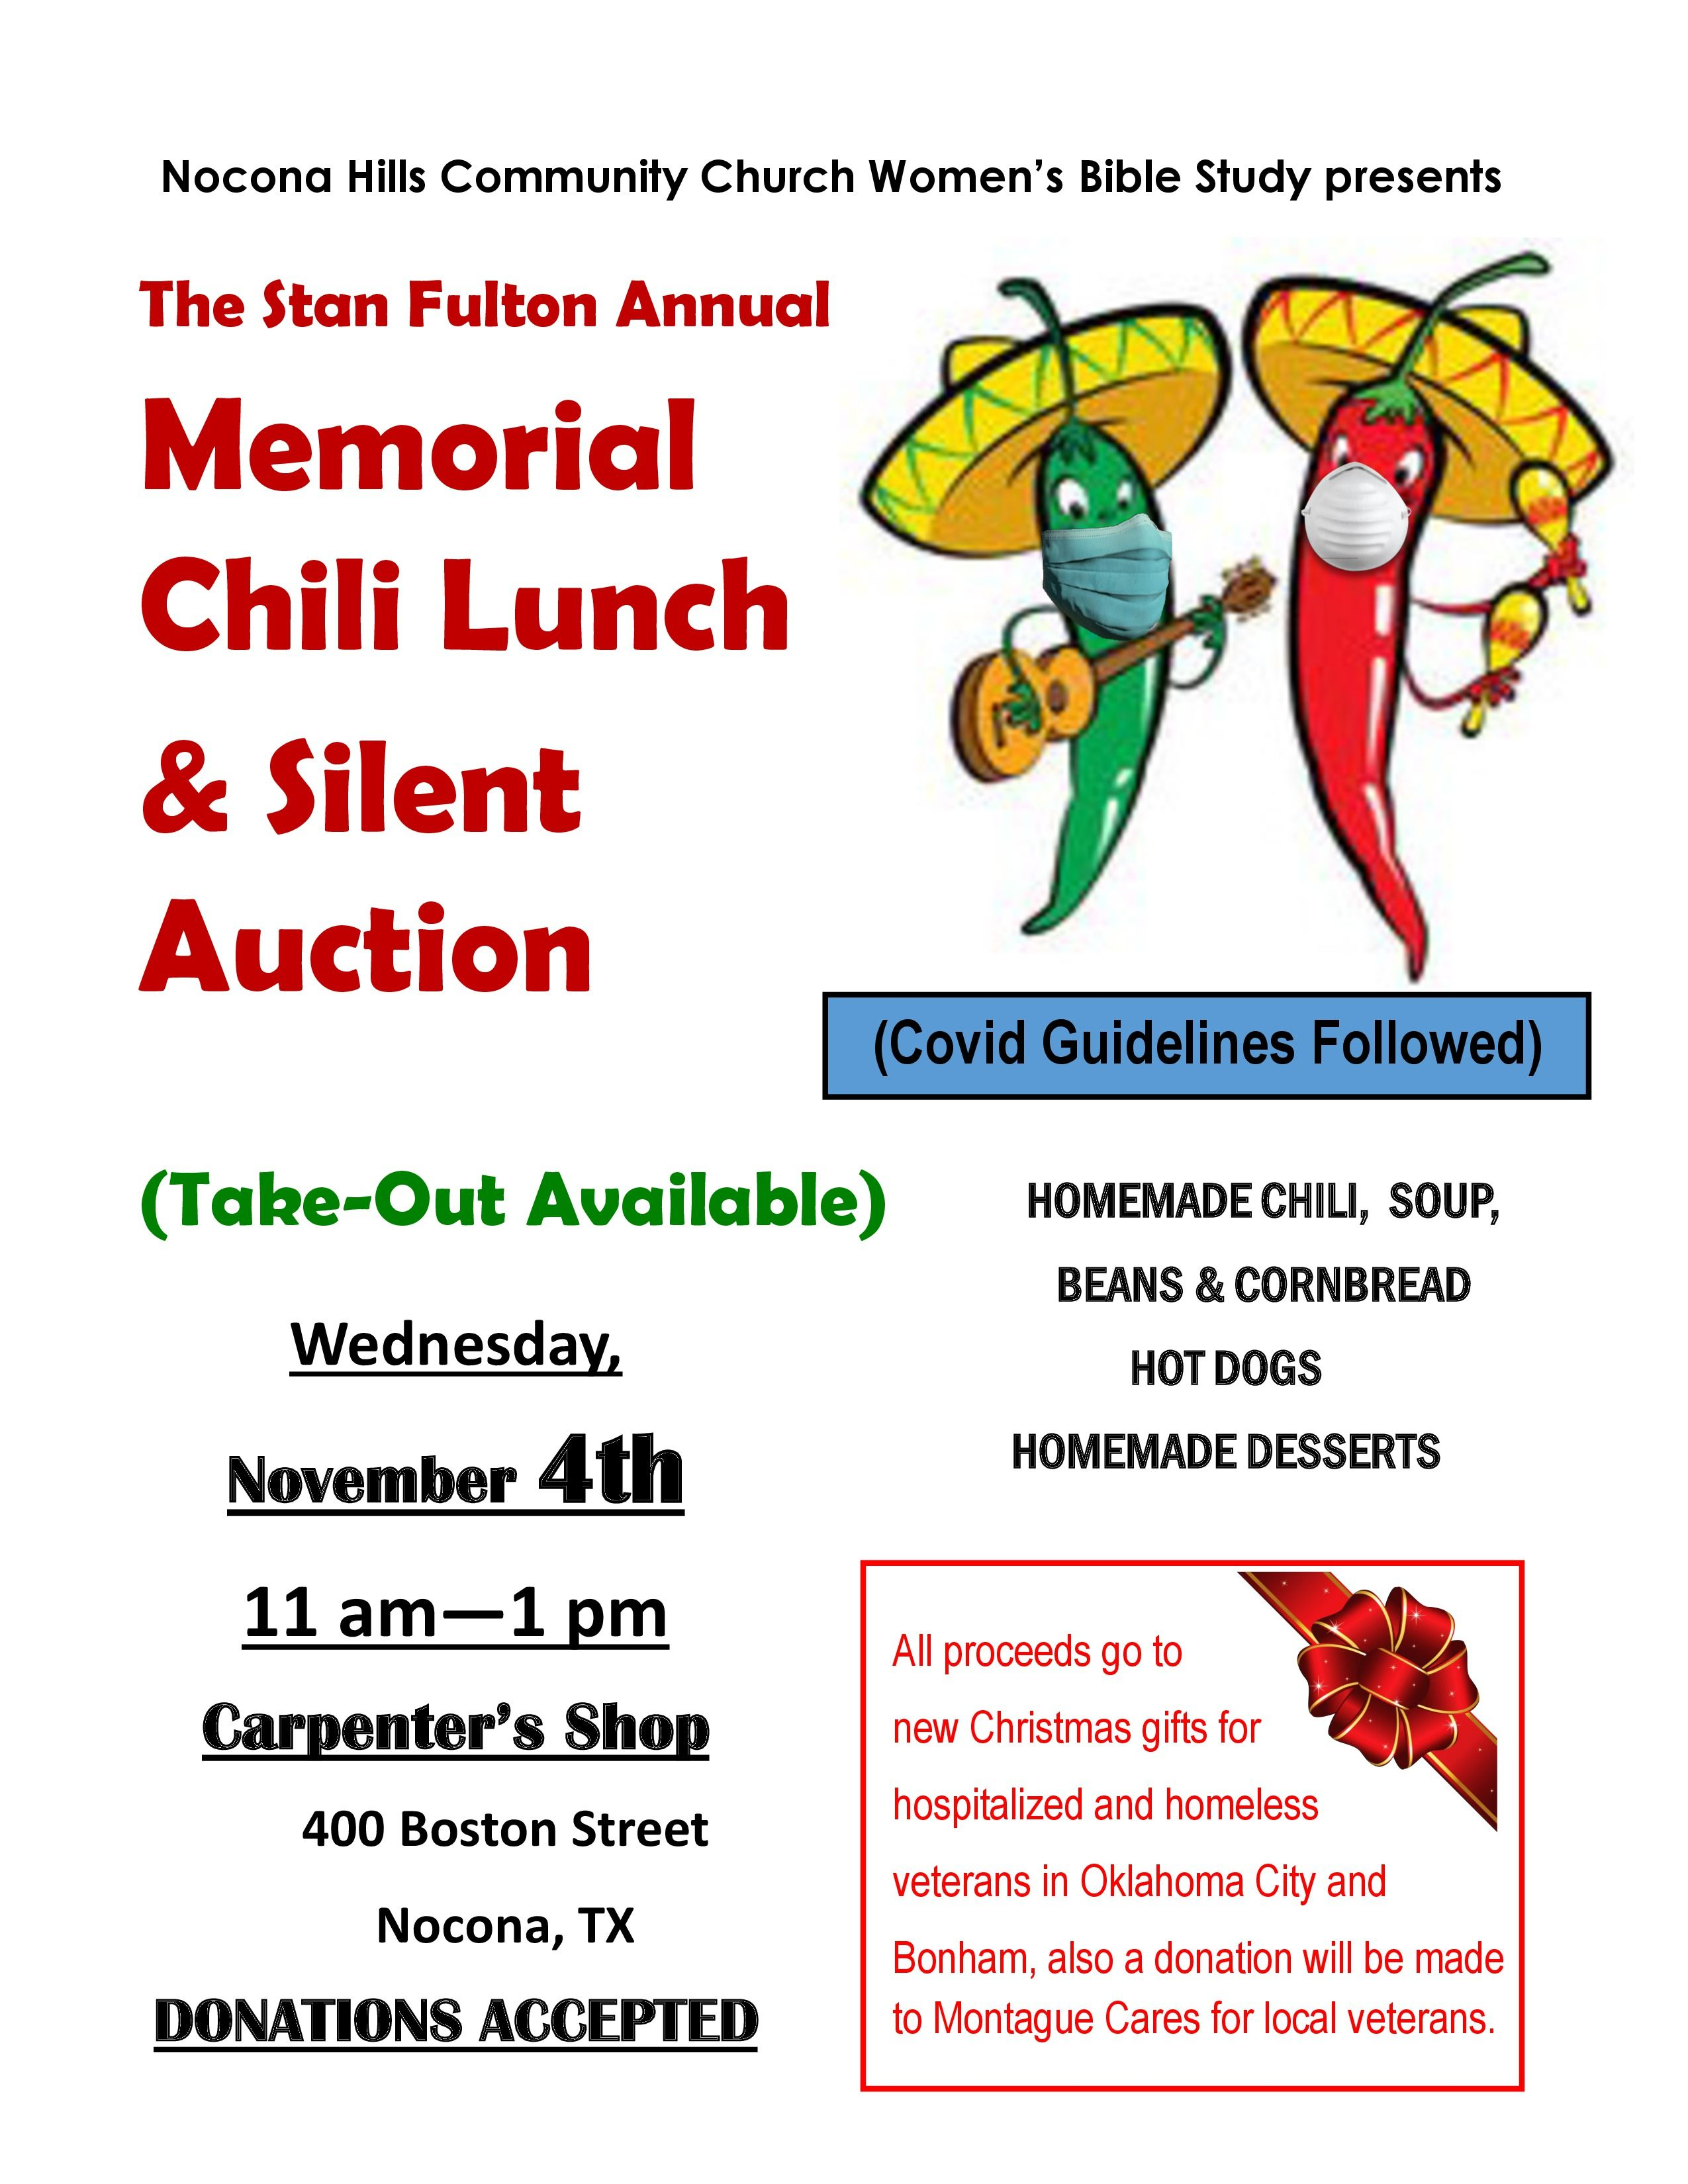 The Stan Fulton Annual Memorial Chili Lunch & Silent Auction